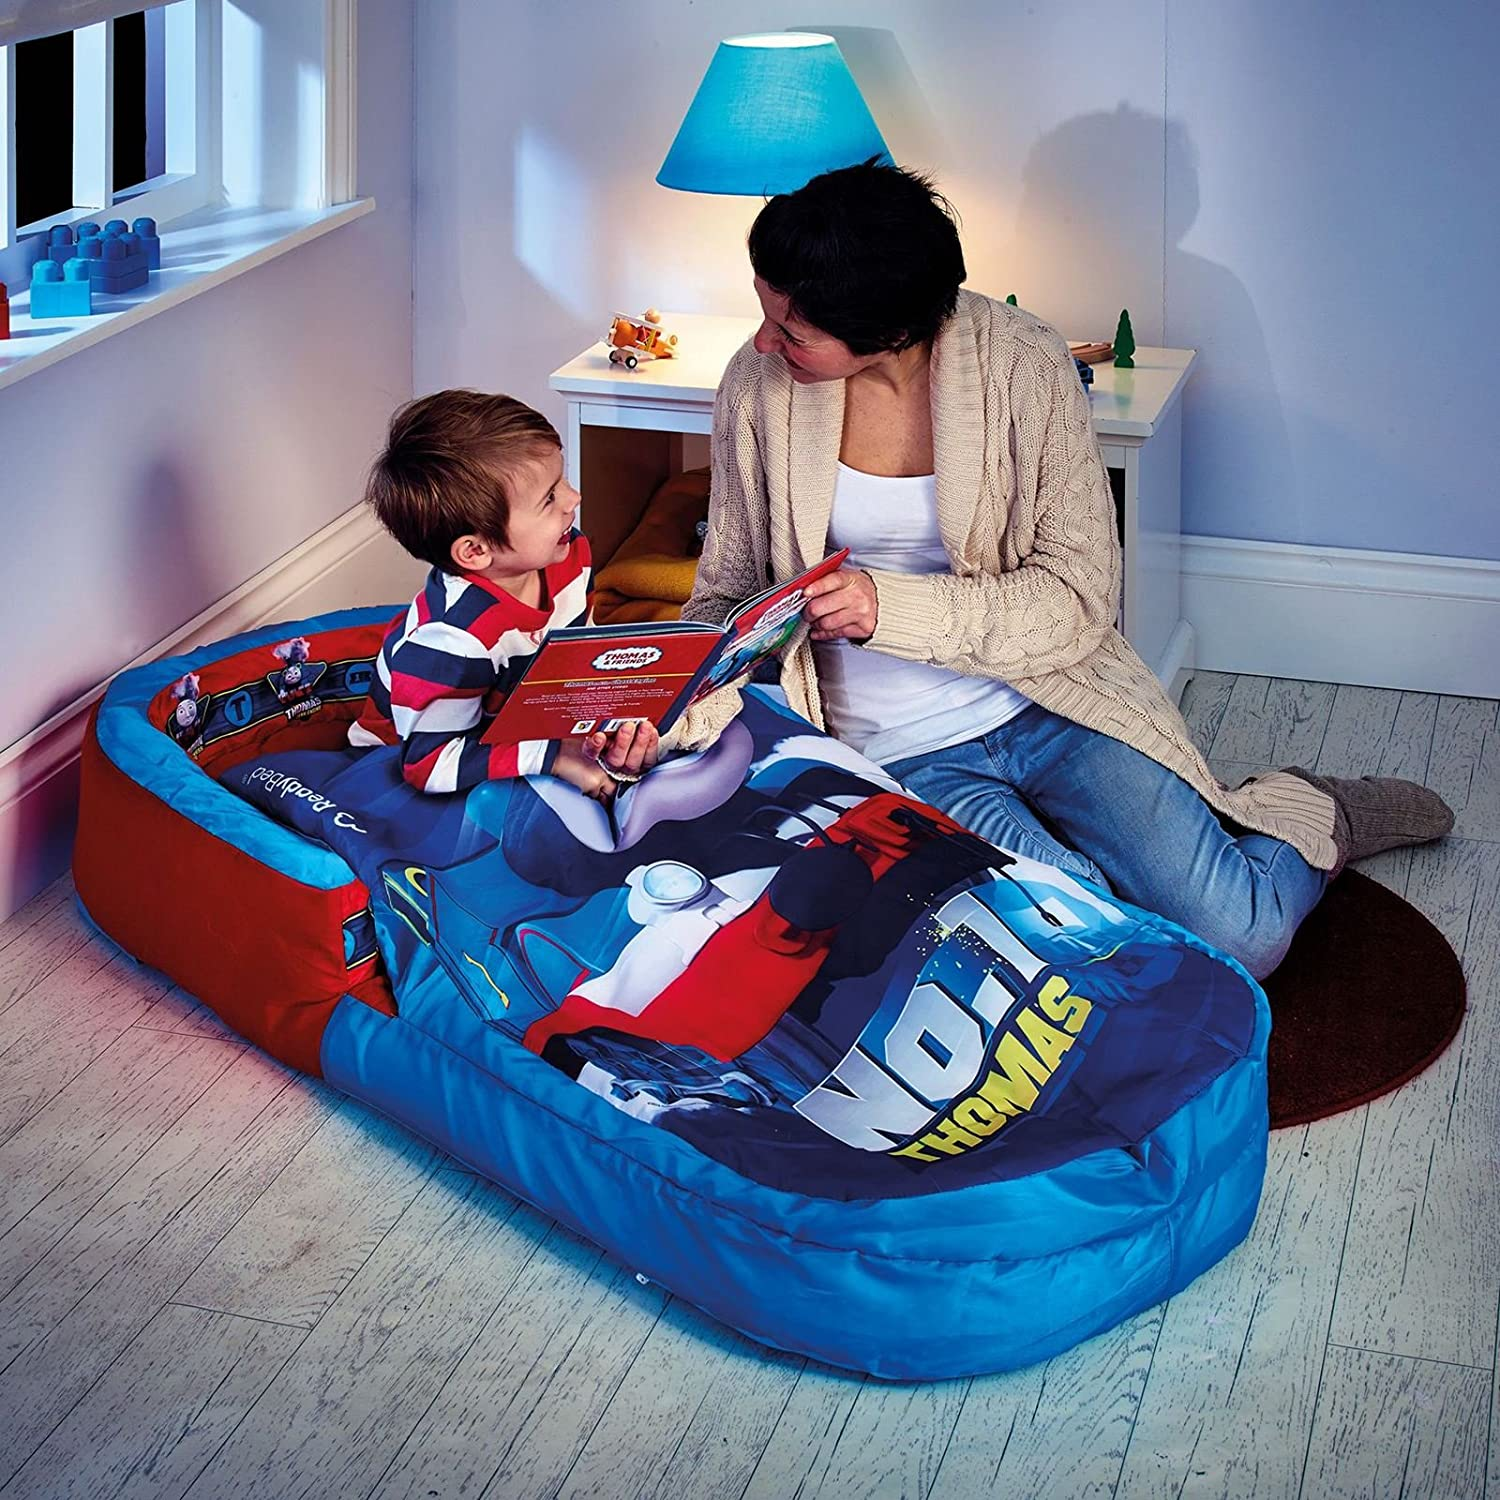 Kids First Beds Room Ideas Bedroom Design Funny Play Beds